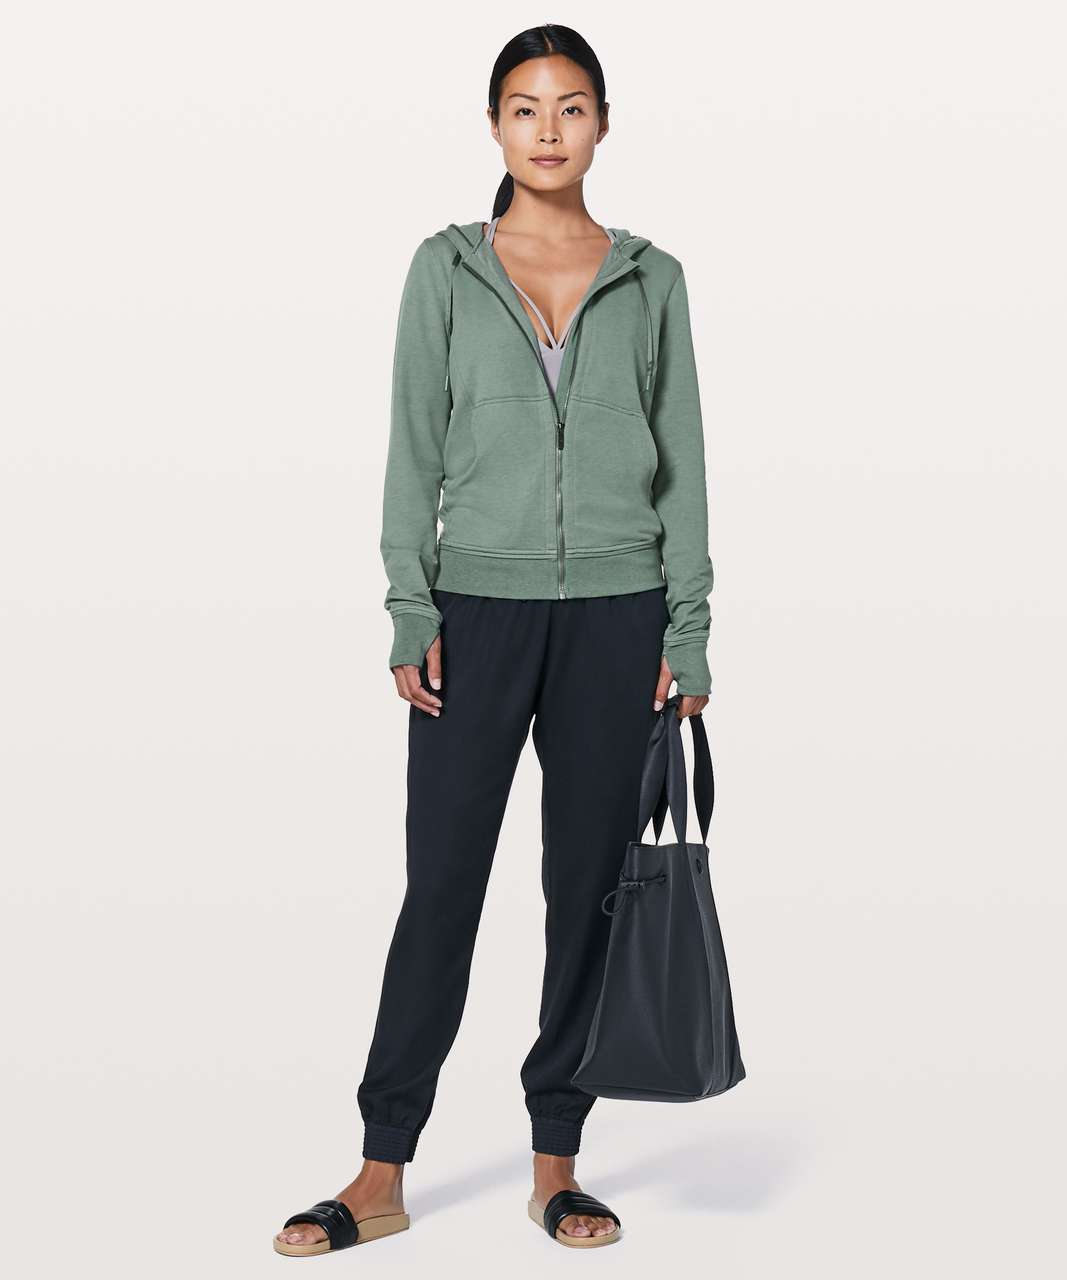 Lululemon Press Pause Jacket - Juniper